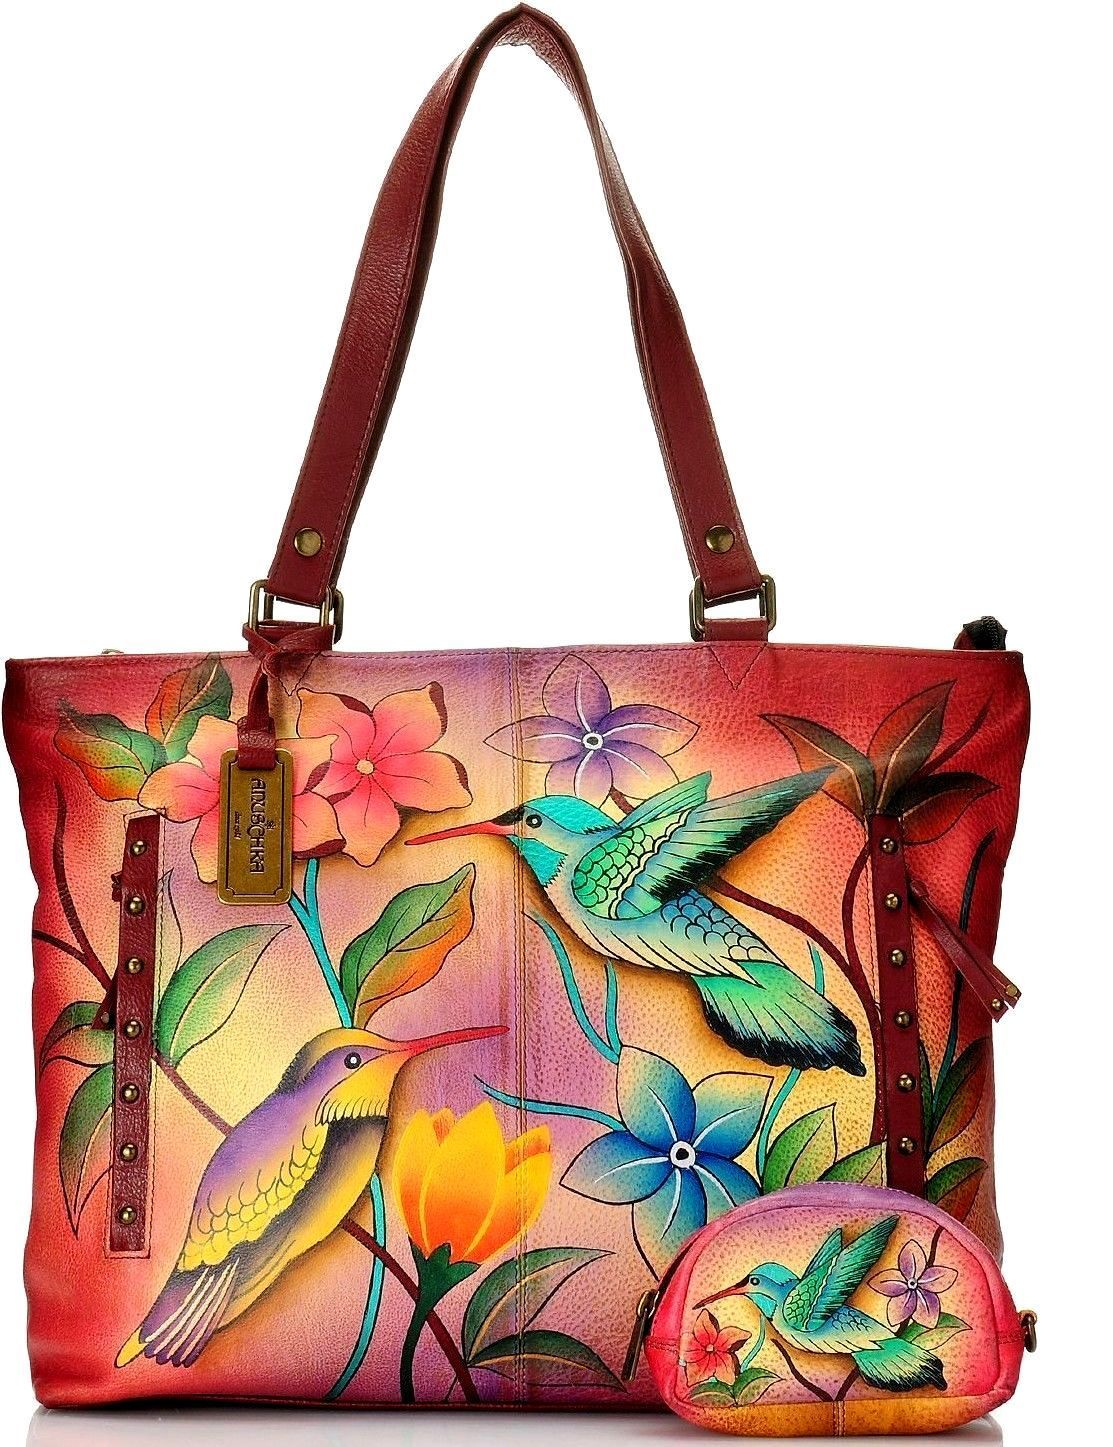 a7c57537cecb Anuschka Hand Painted Leather Zip Top Oversized Tote with Change Purse